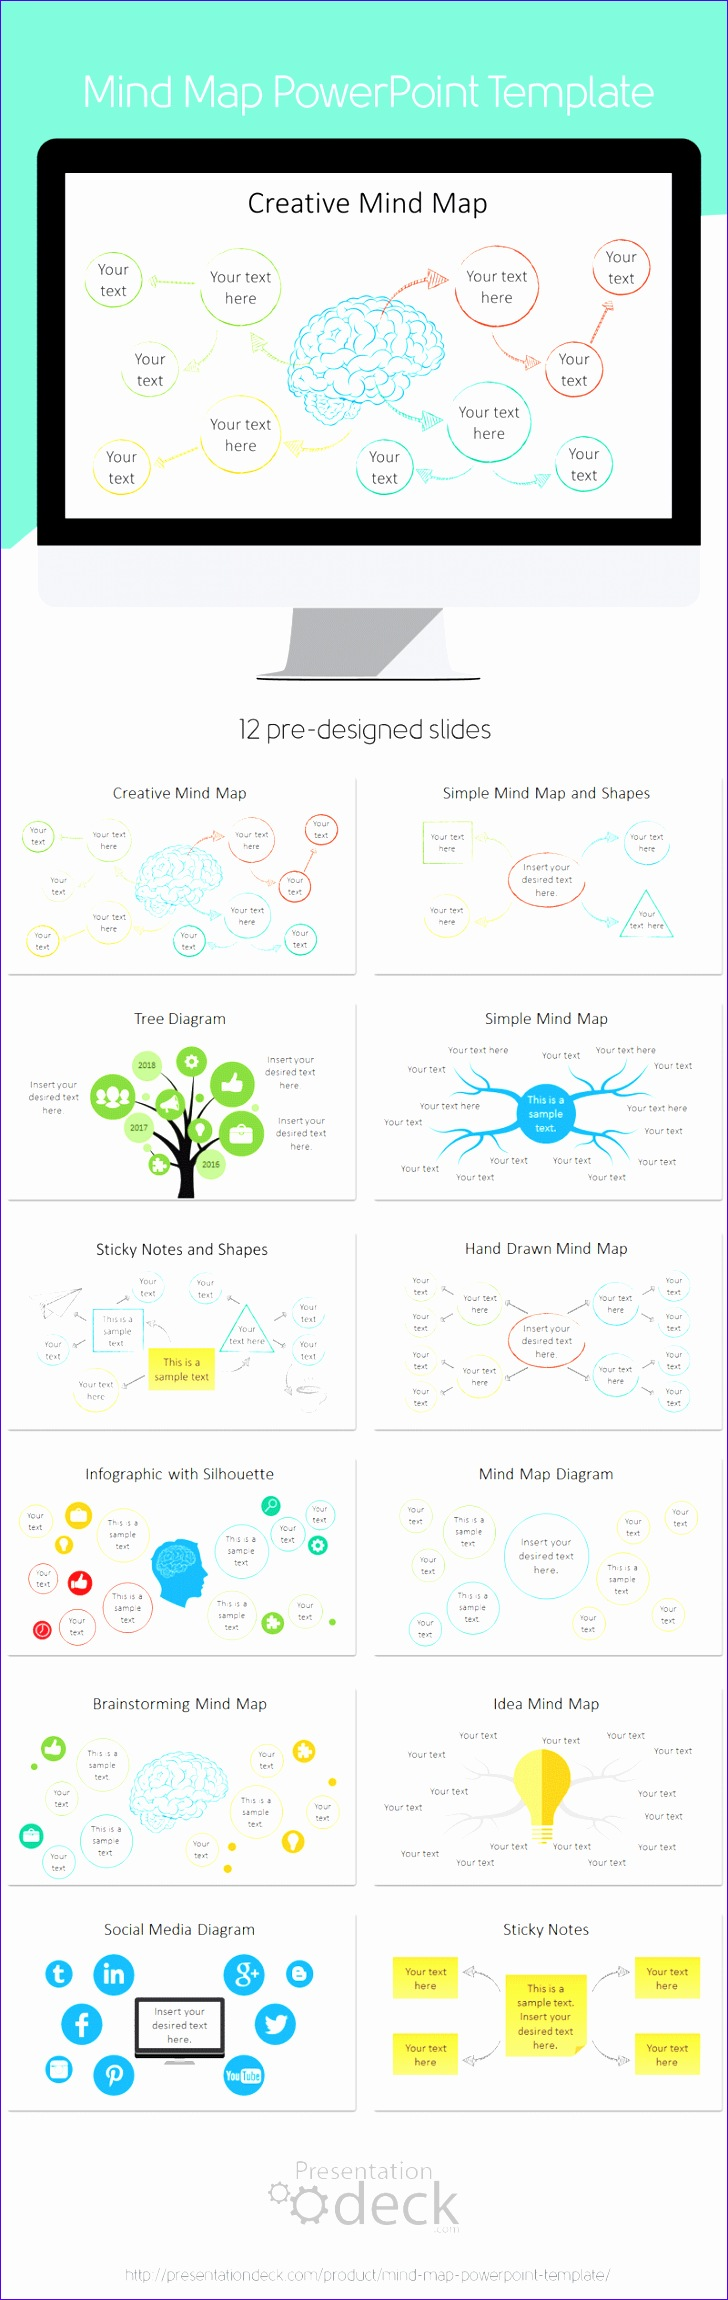 14 excel mind map template - exceltemplates